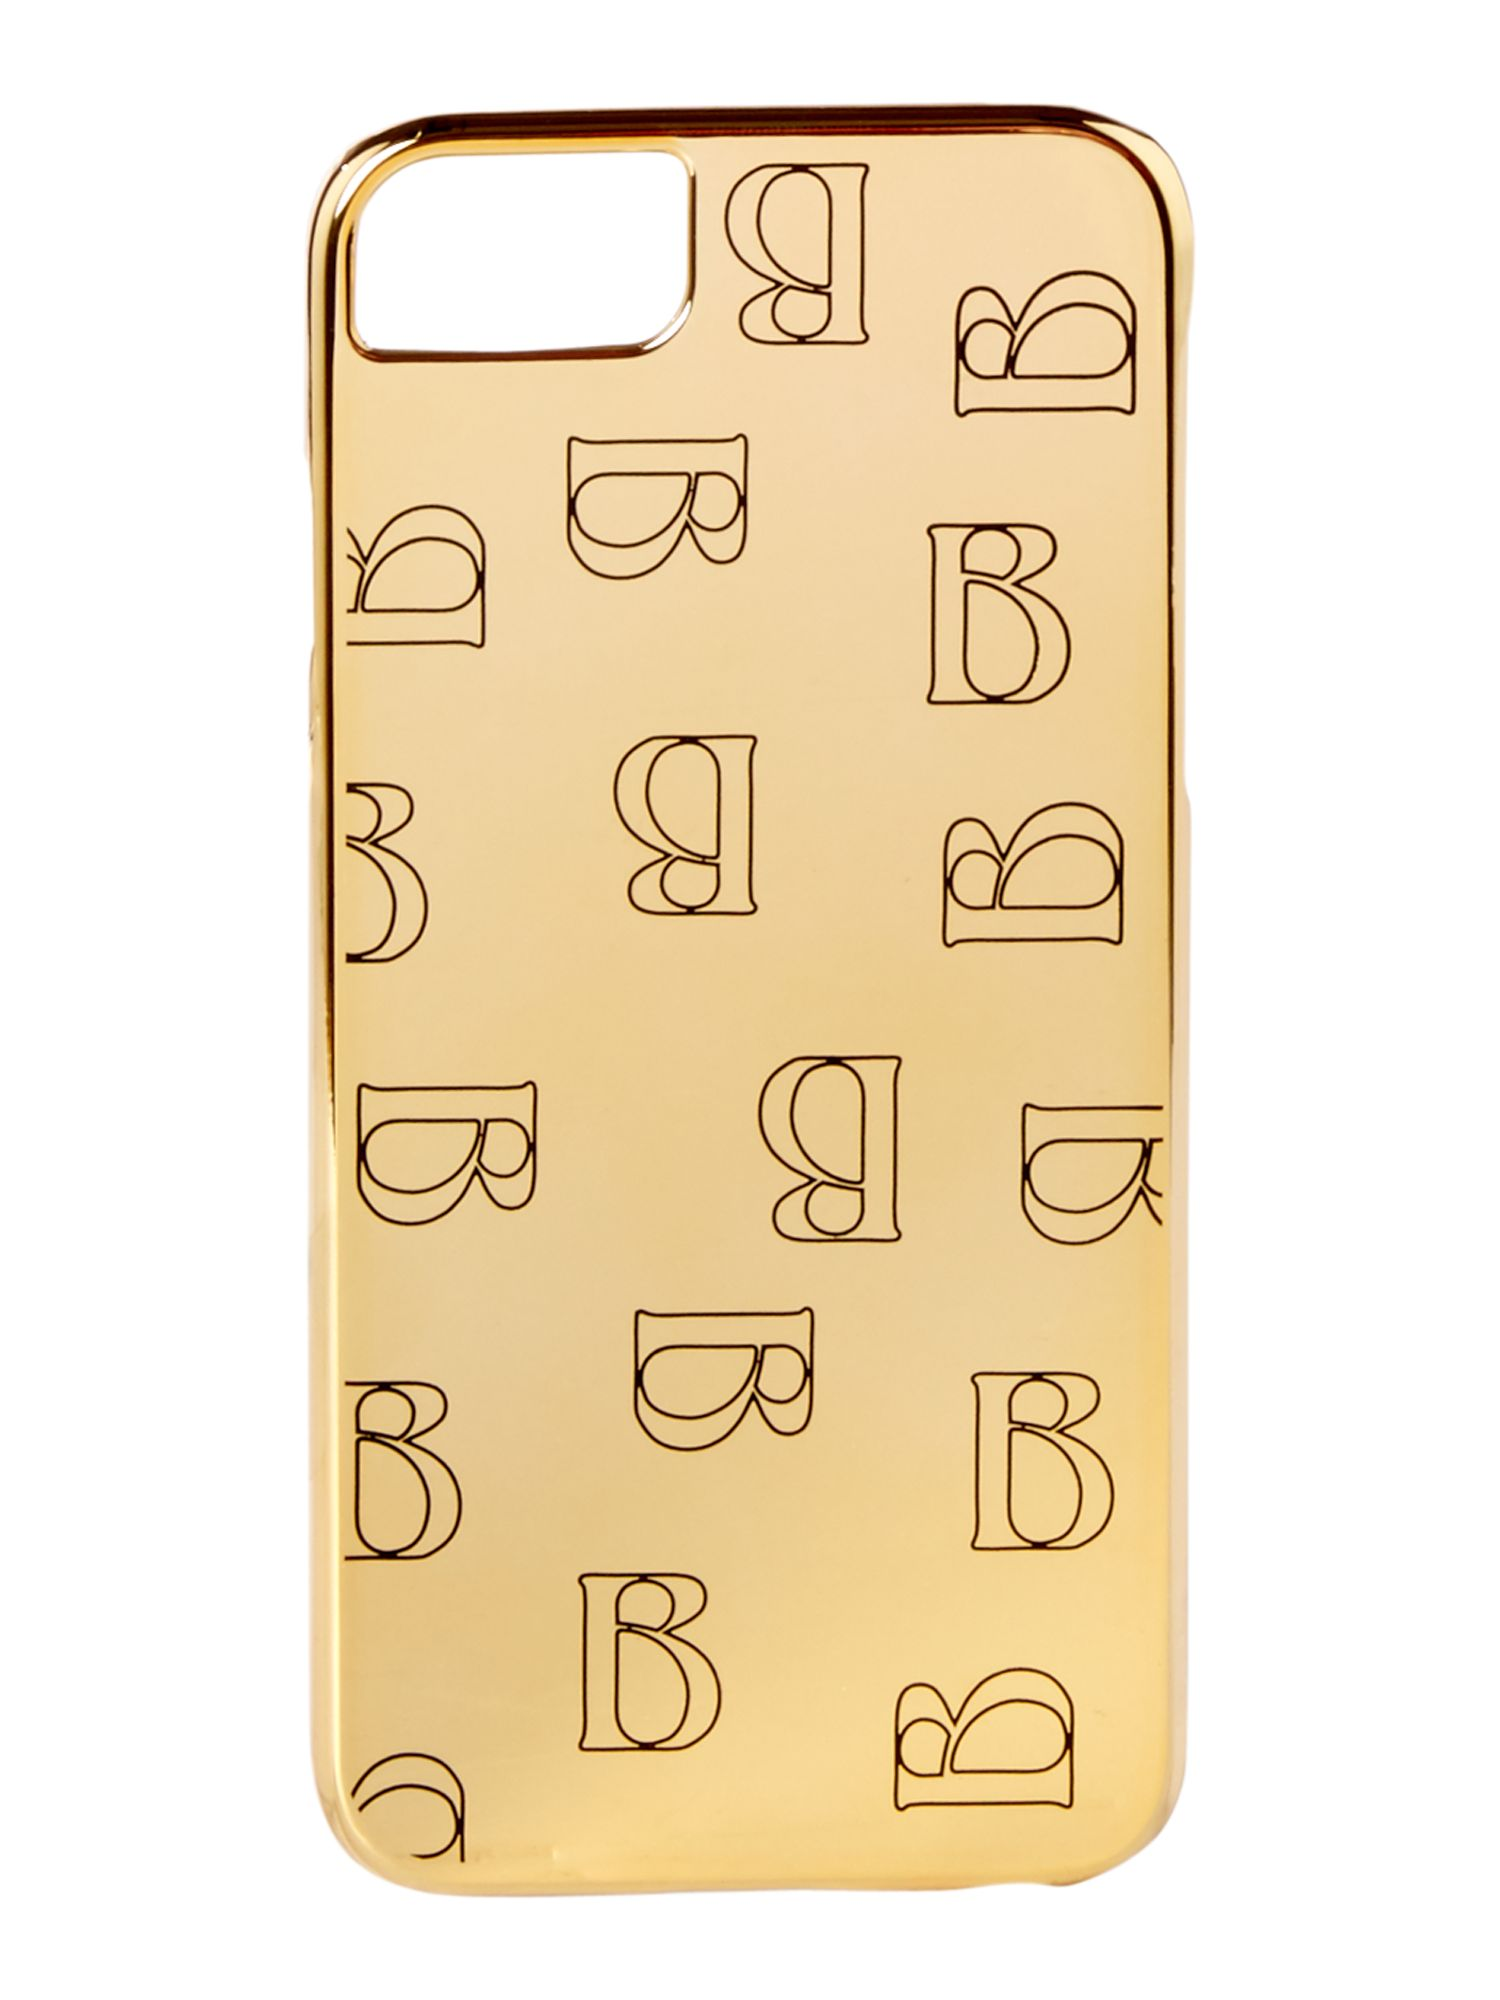 Biba B logo iPhone 66s78 case, Gold